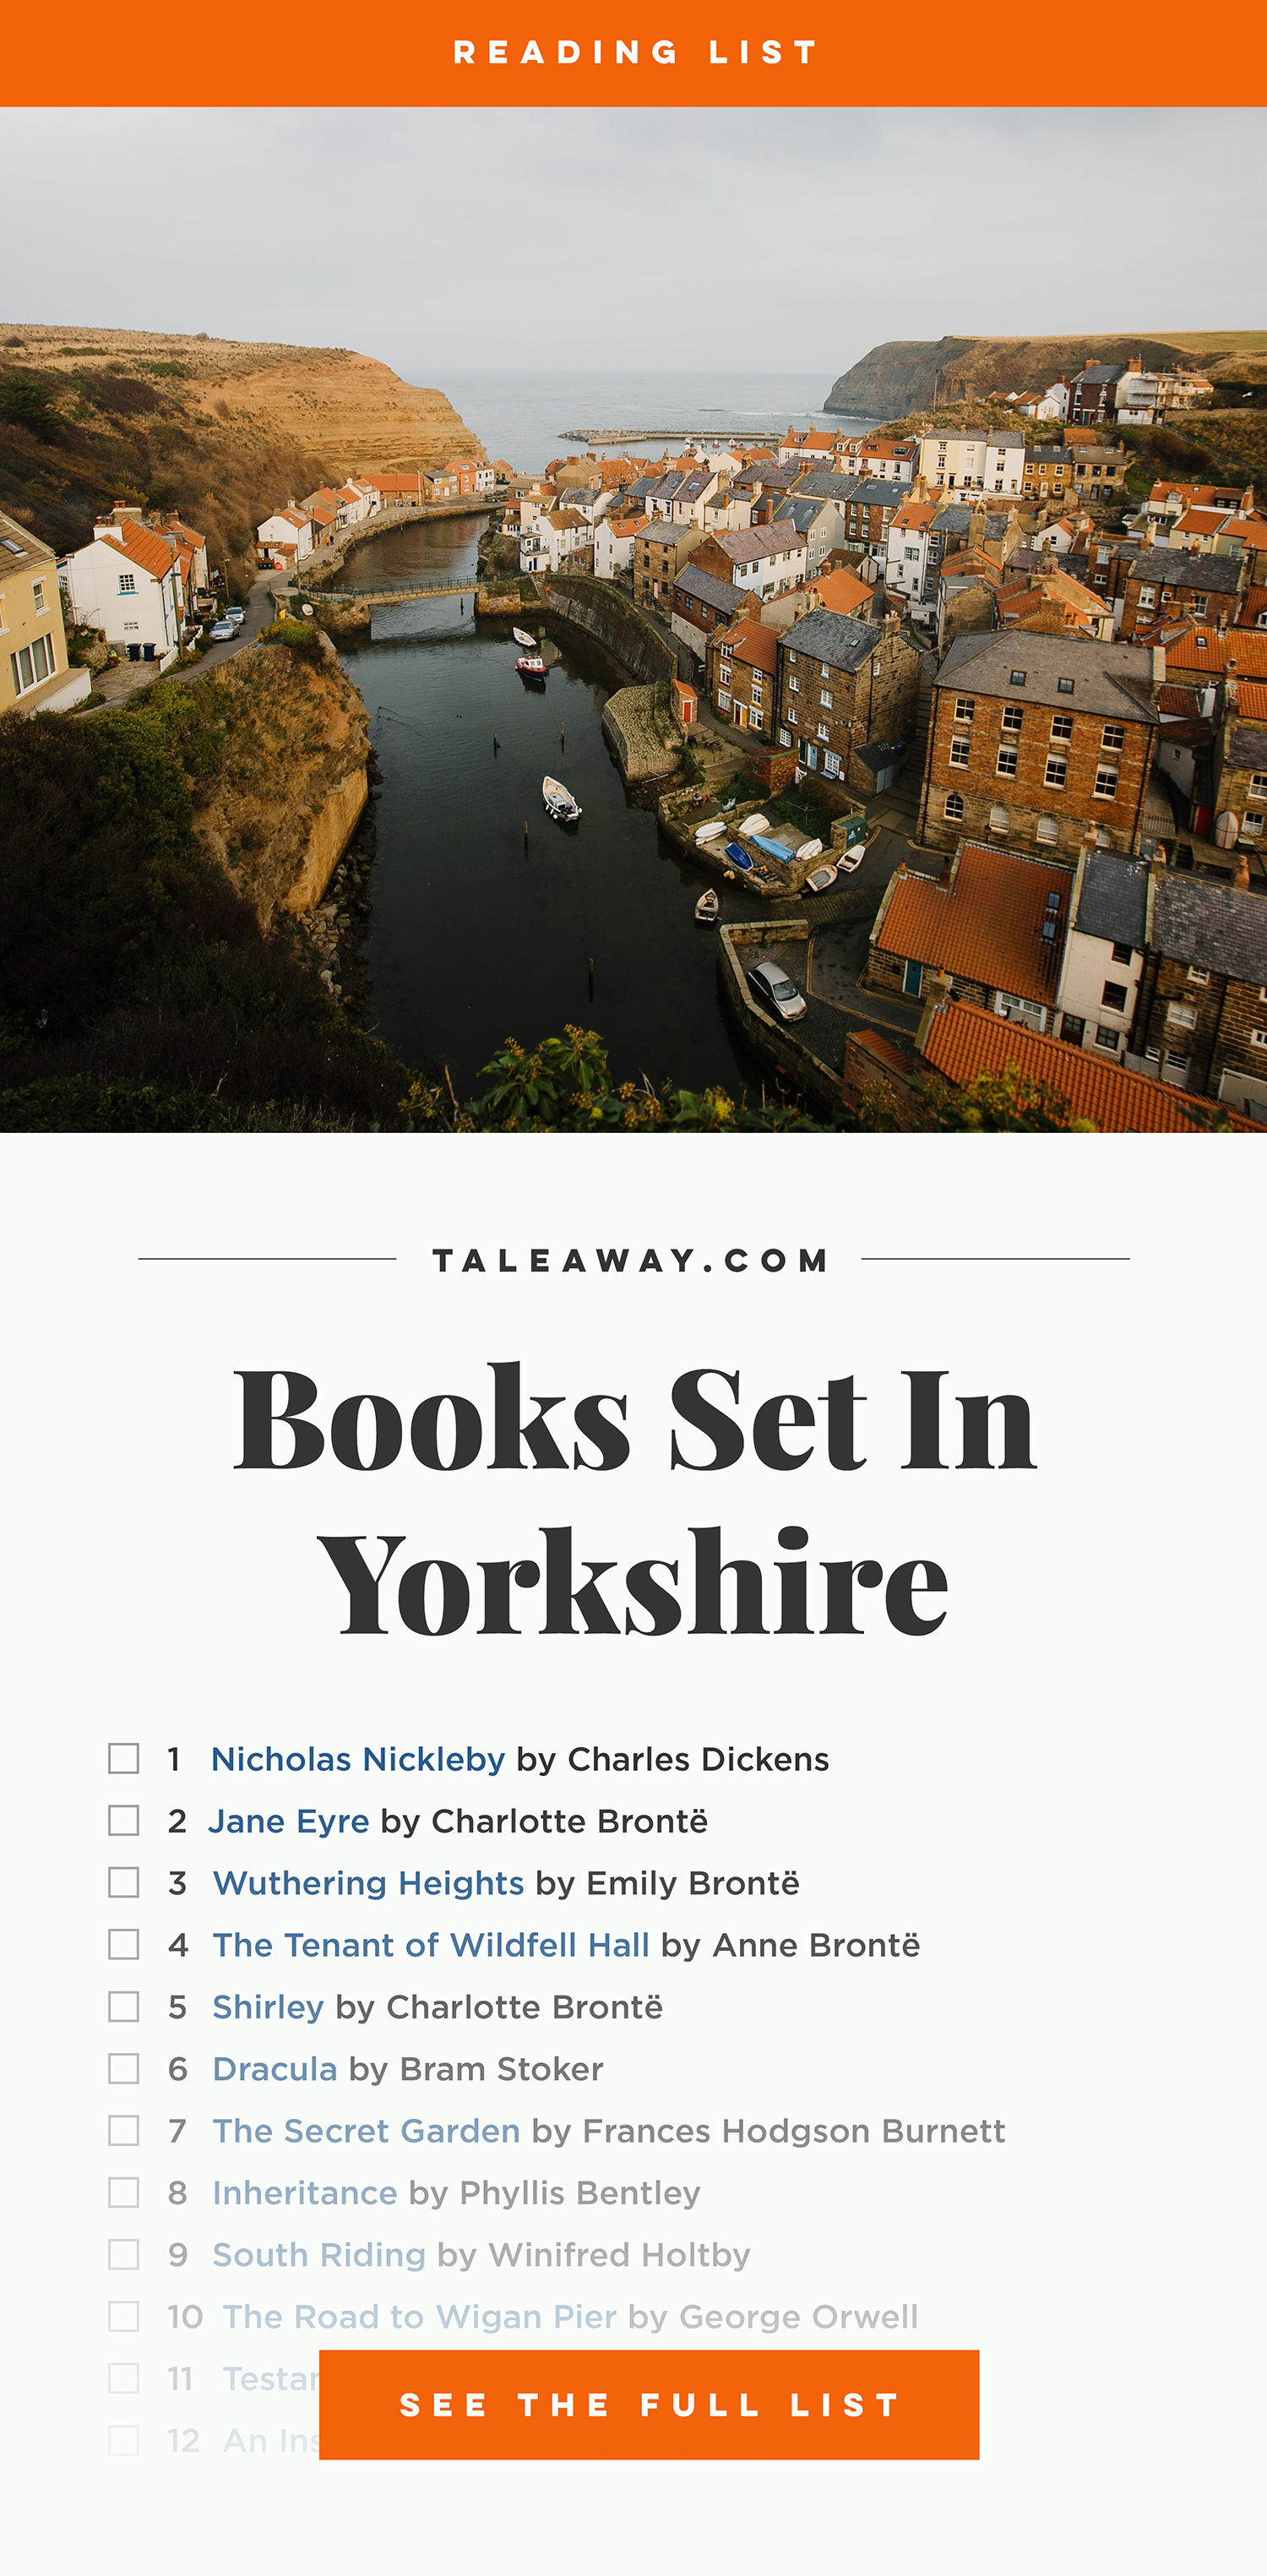 Books Set in Yorkshire. yorkshire books, yorkshire novels, yorkshire literature, yorkshire fiction, yorkshire authors, best books set in yorkshire, popular books set in yorkshire, books about yorkshire, yorkshire reading challenge, yorkshire reading list, york books, leeds books, bradford books, yorkshire packing list, yorkshire travel, yorkshire history, yorkshire travel books, yorkshire books to read, books to read before going to yorkshire, novels set in yorkshire, books to read about yorkshire